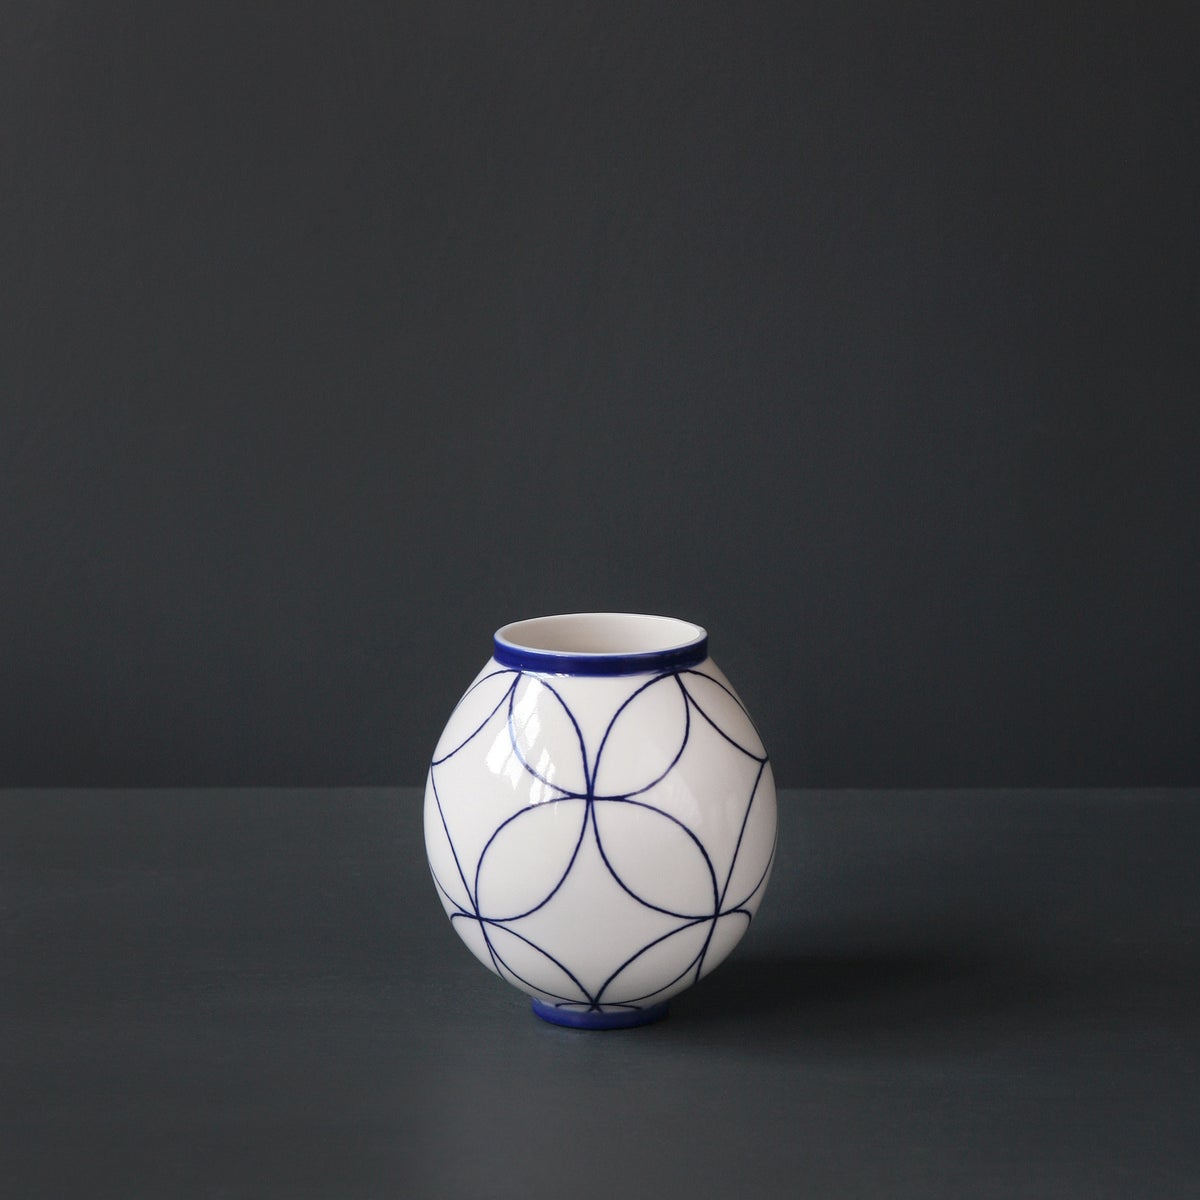 Image of 'Double Ring' Moon Jar by Rhian Malin.